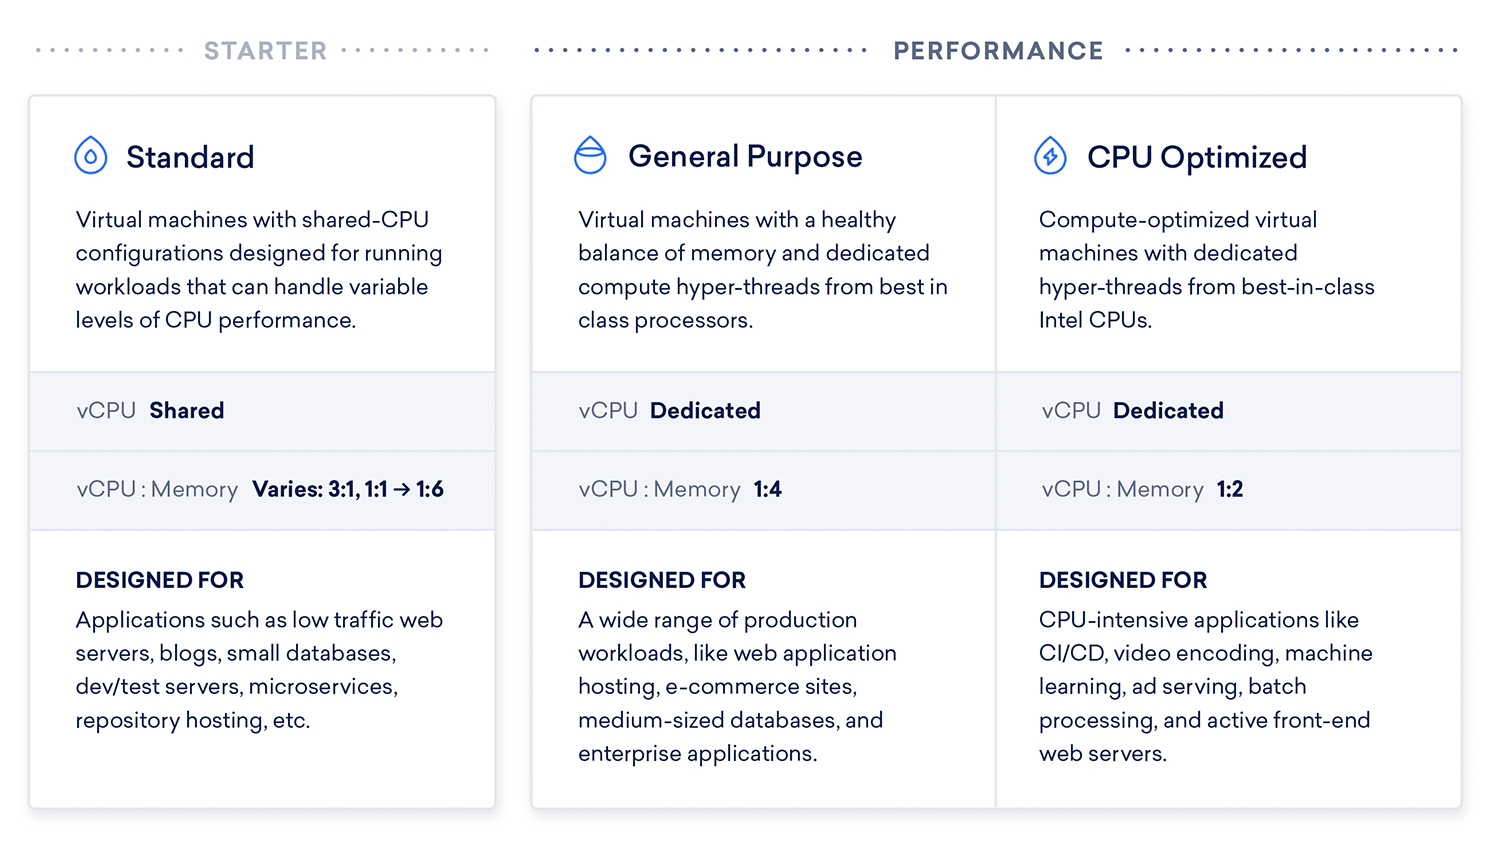 Introducing General Purpose Droplets: Dedicated vCPUs and More Memory